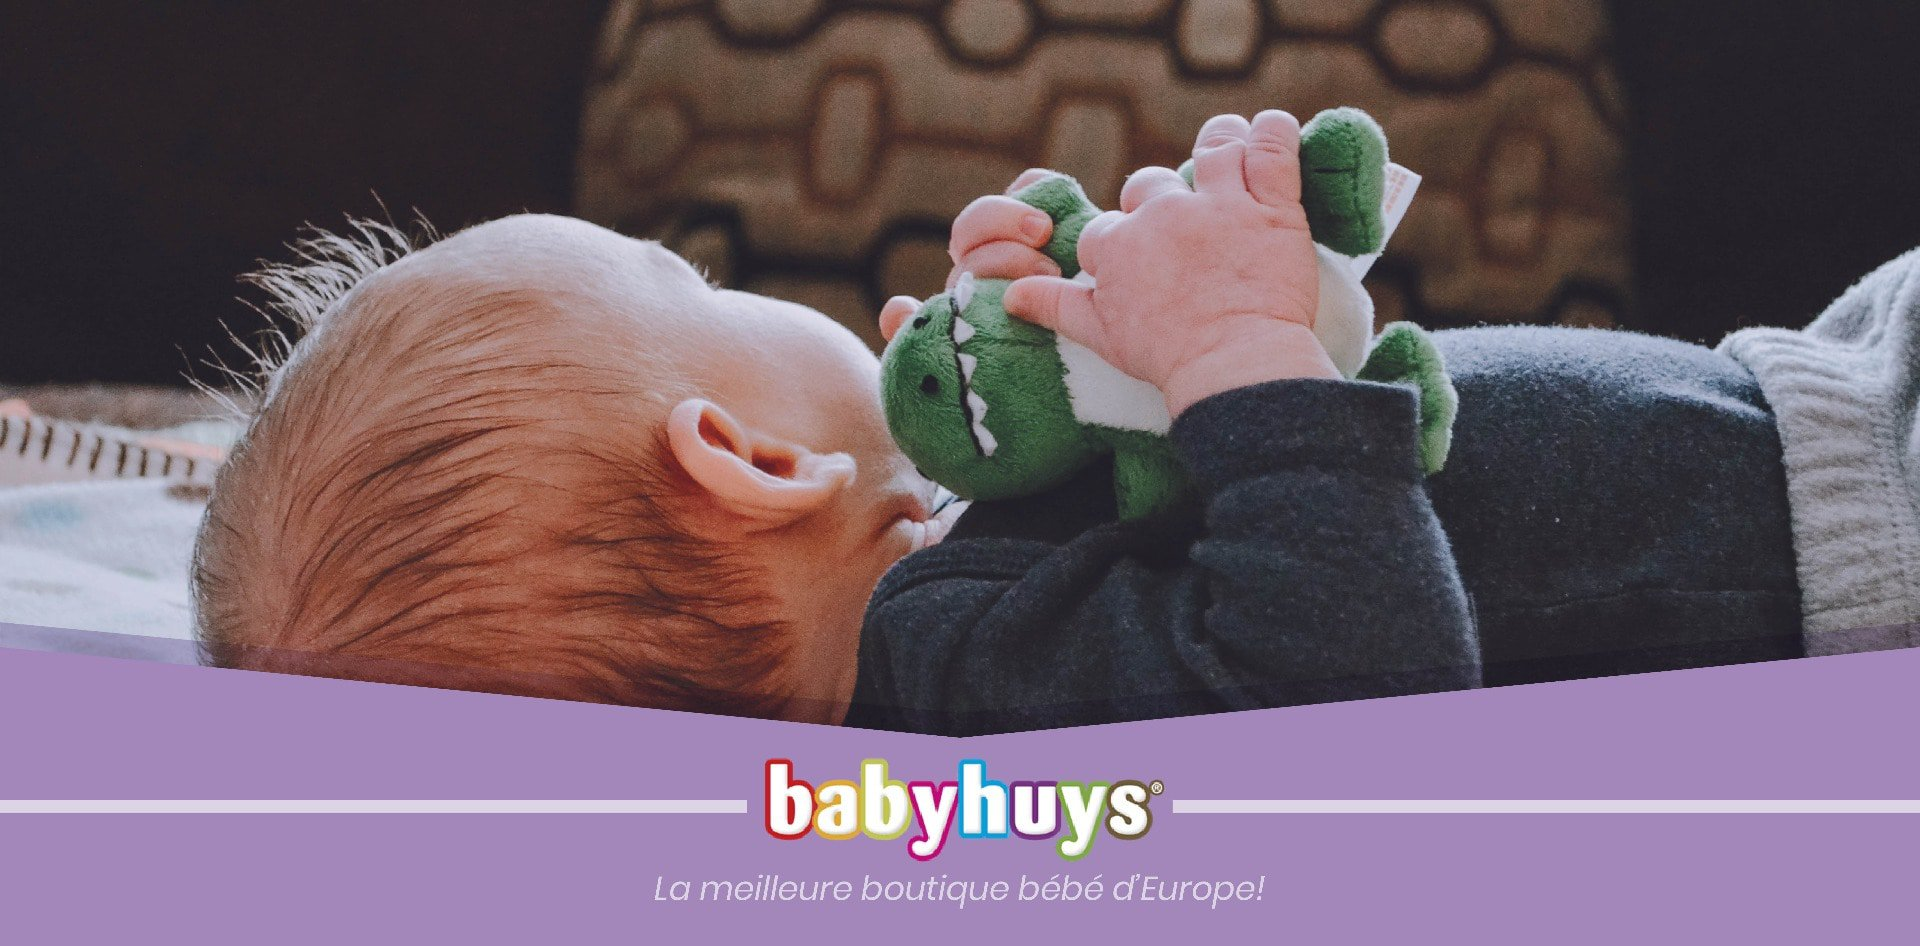 Peluches | Babyhuys